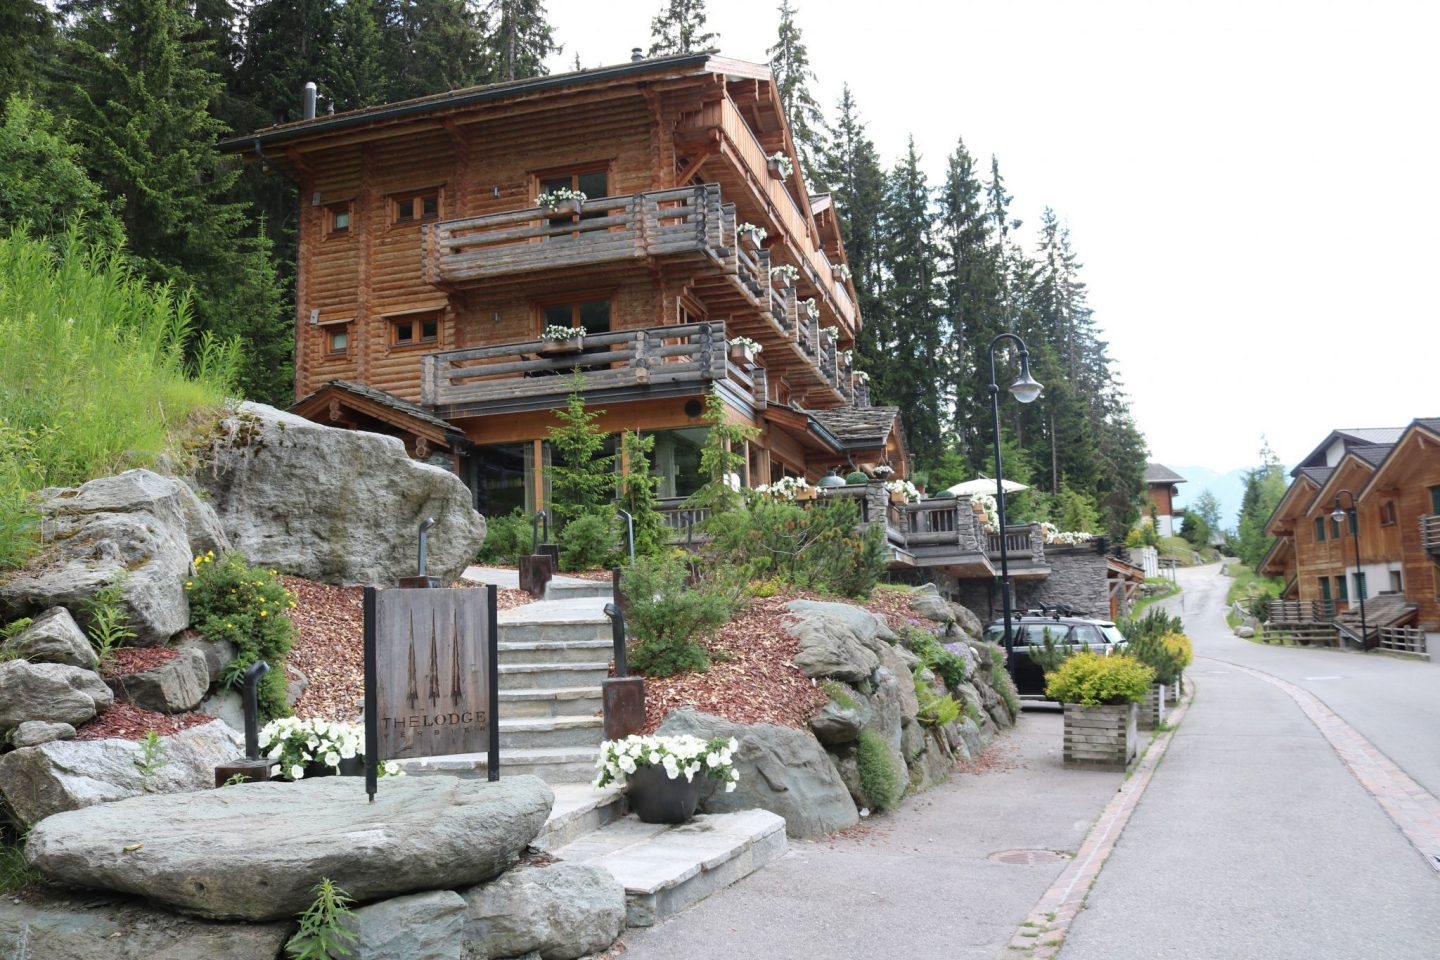 Luxurious Swiss Chalet Chic at The Lodge, Verbier